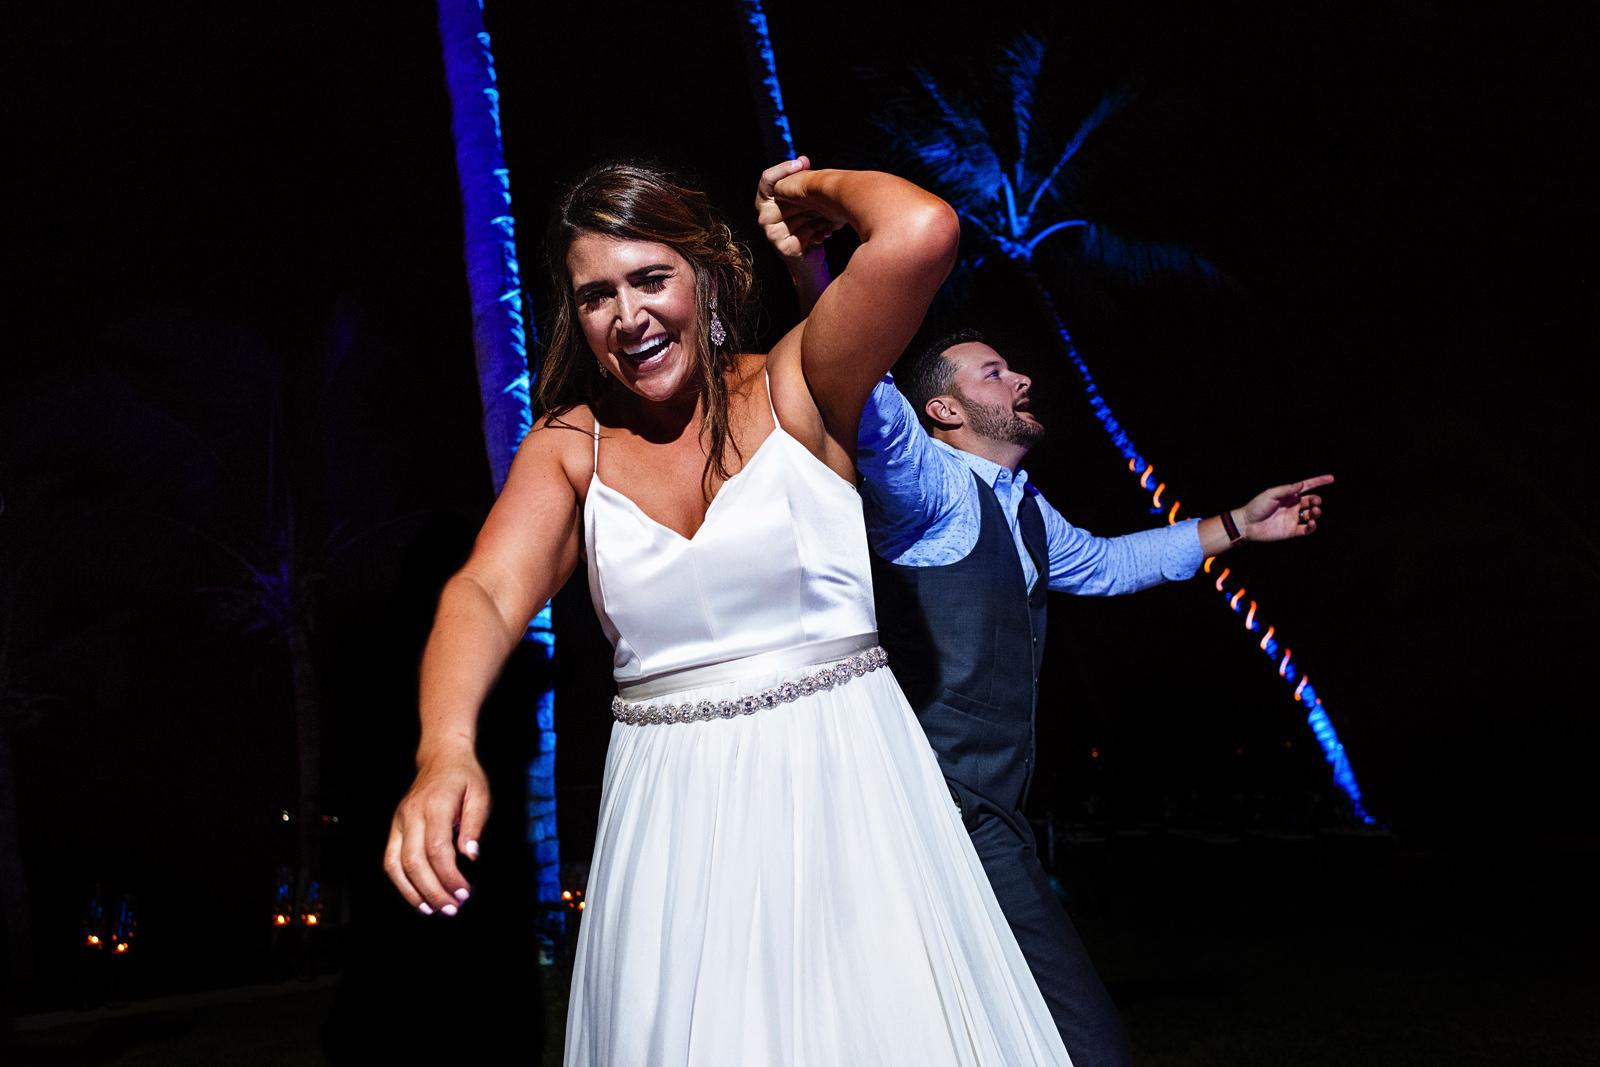 Bride and wedding guest dancing and having fun